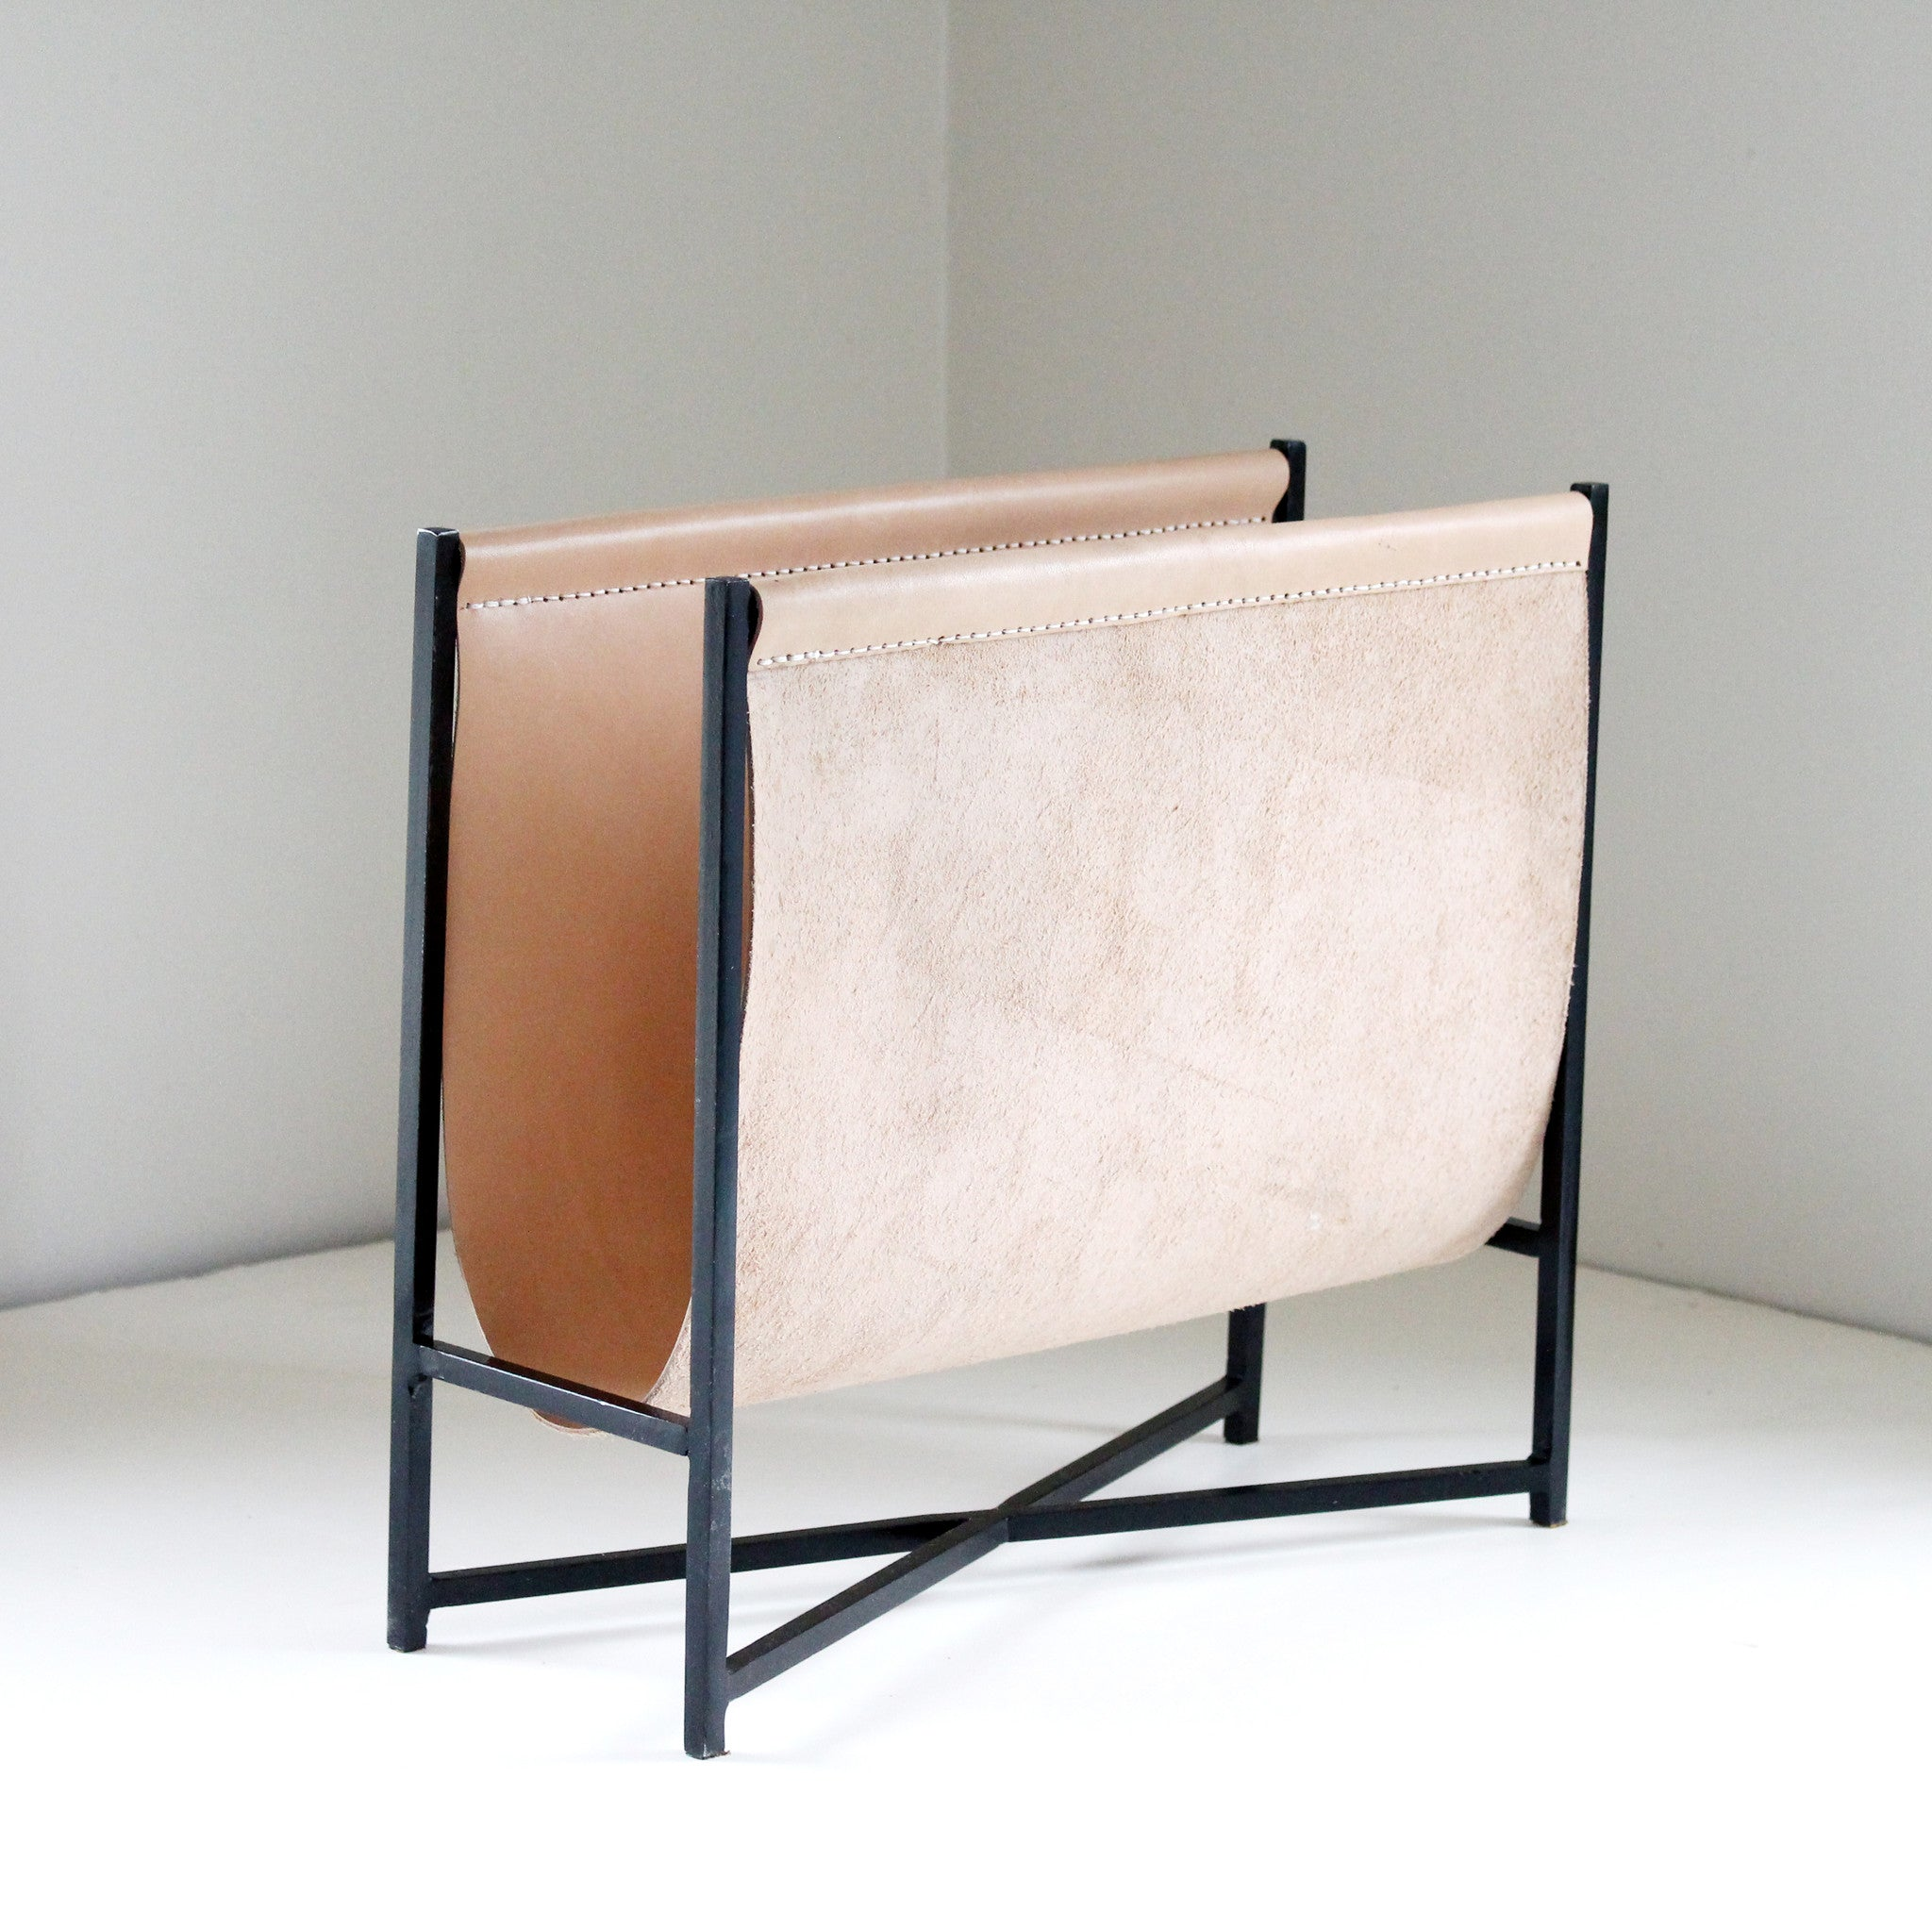 2016: Leather & Steel Magazine/Firewood Rack | In Natural or Black